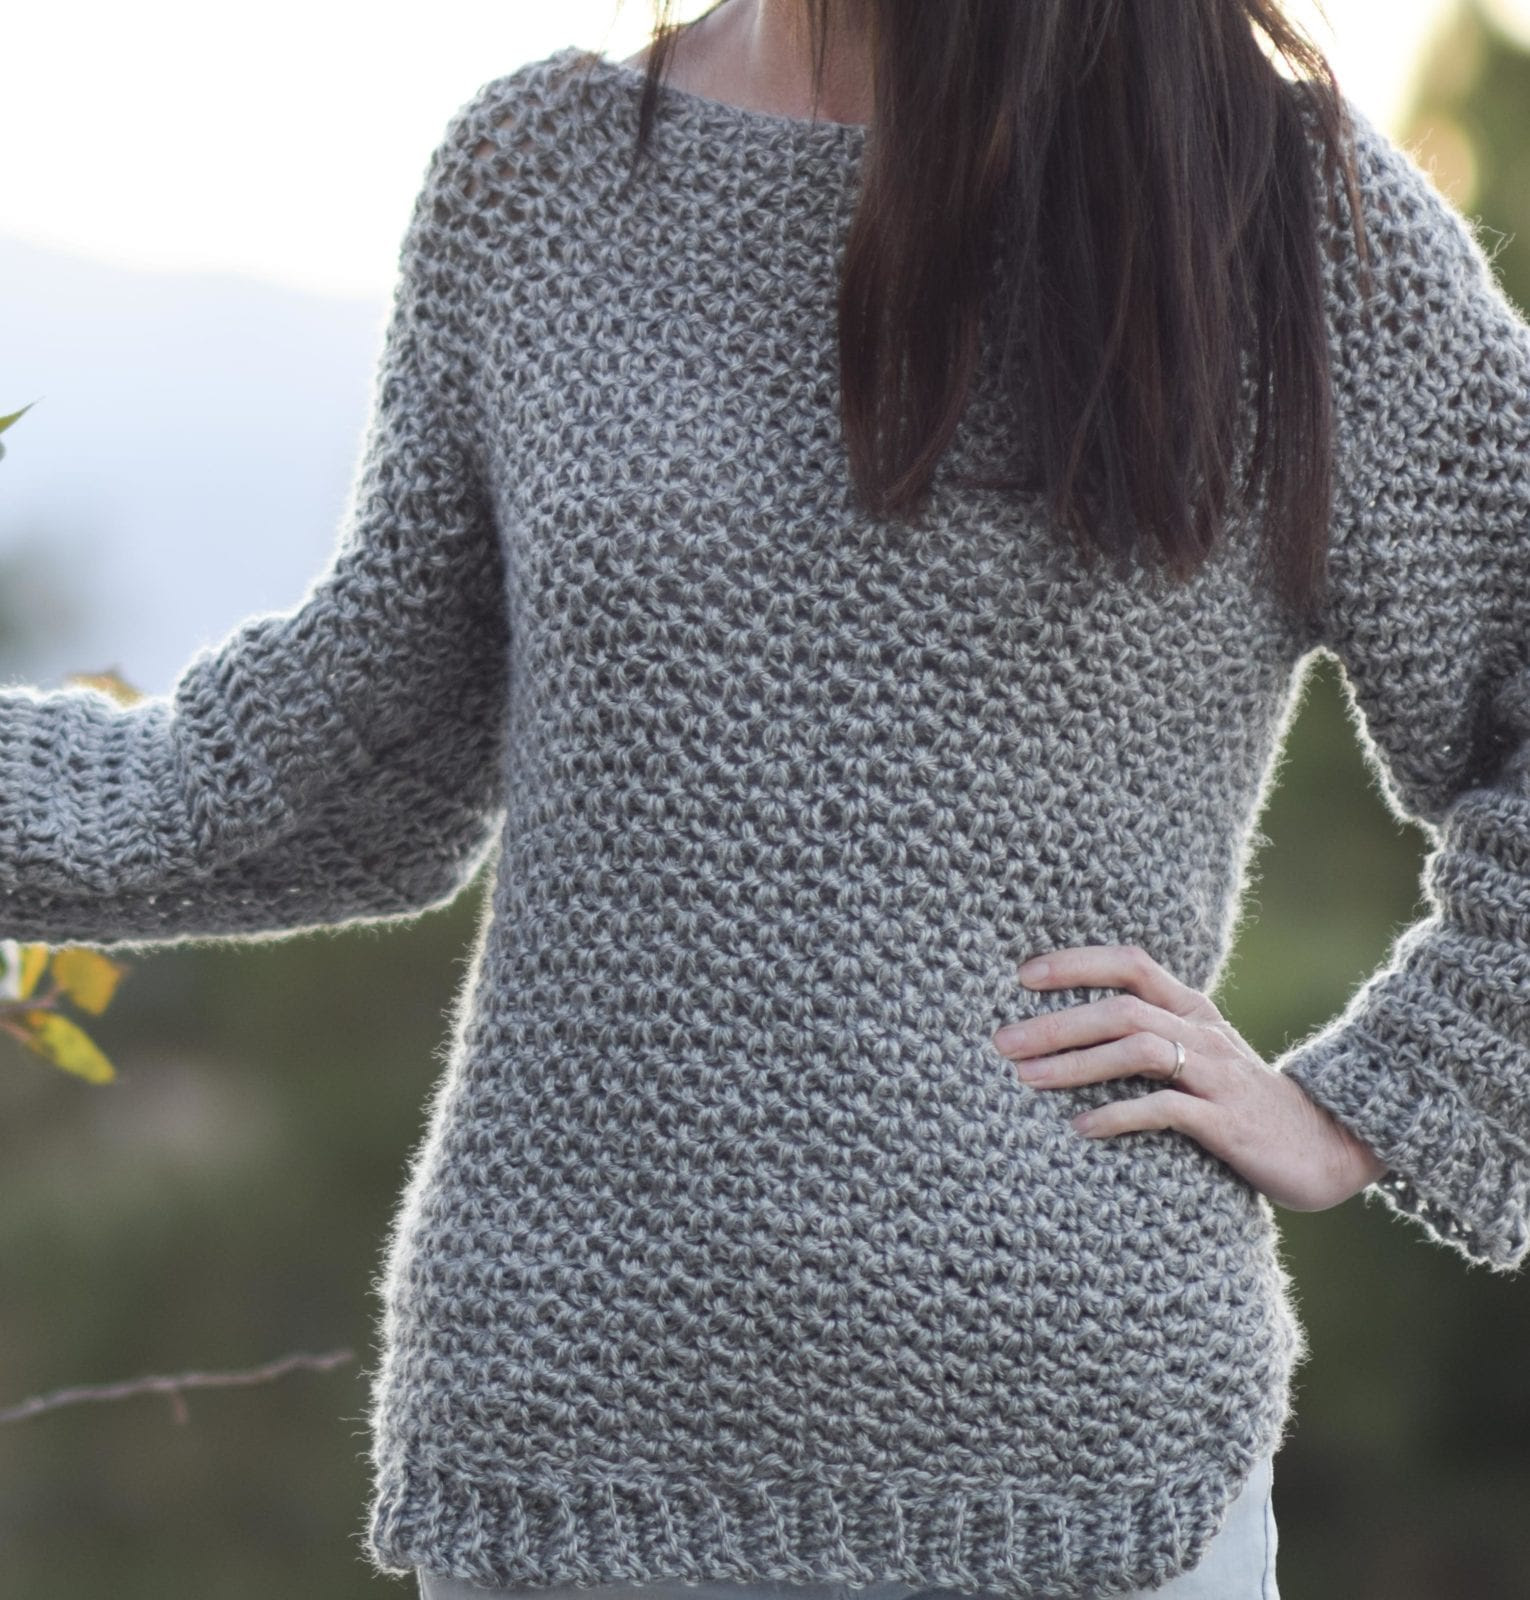 Cardigan beginners youtube knit video easy for united states